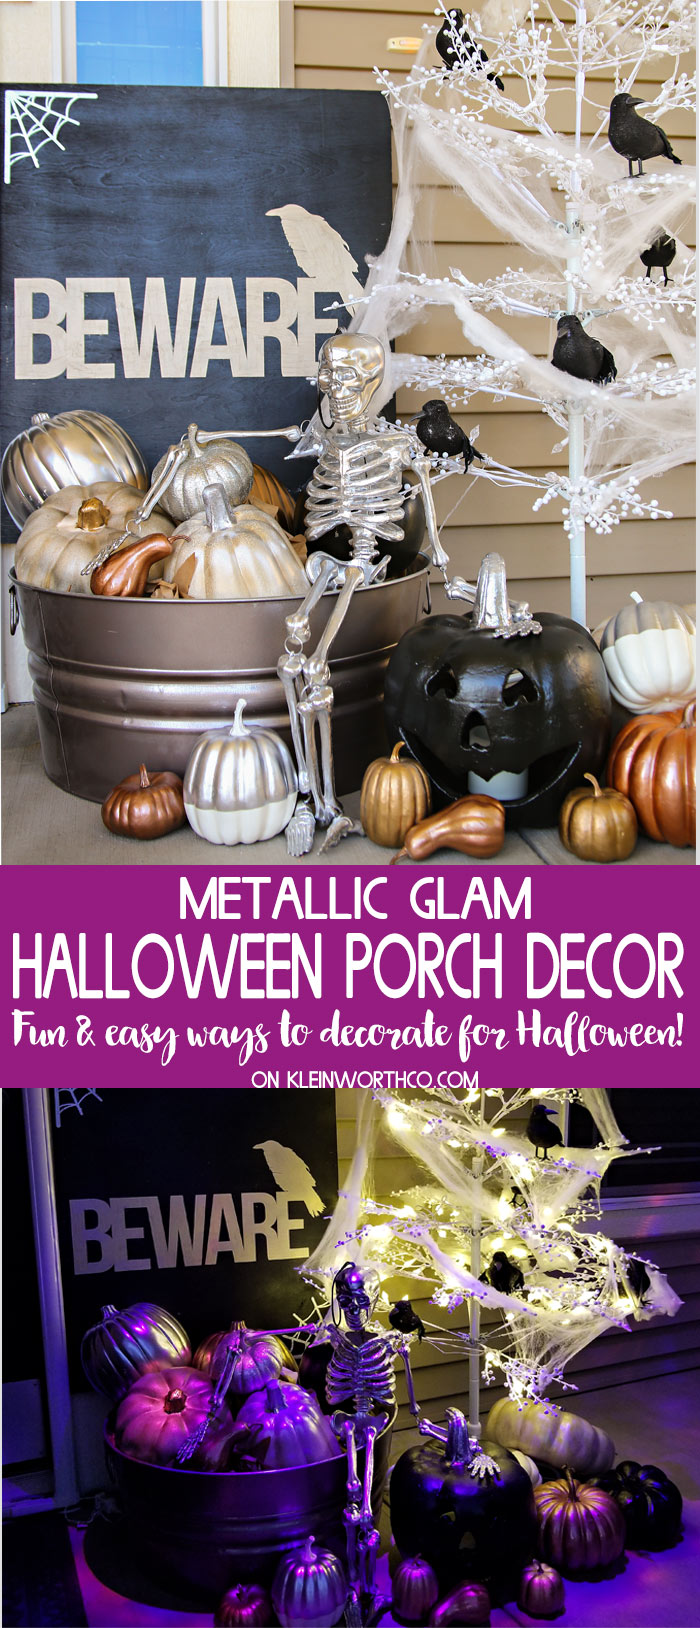 Best Halloween Decorations- Metallic Glam Halloween Porch Decor